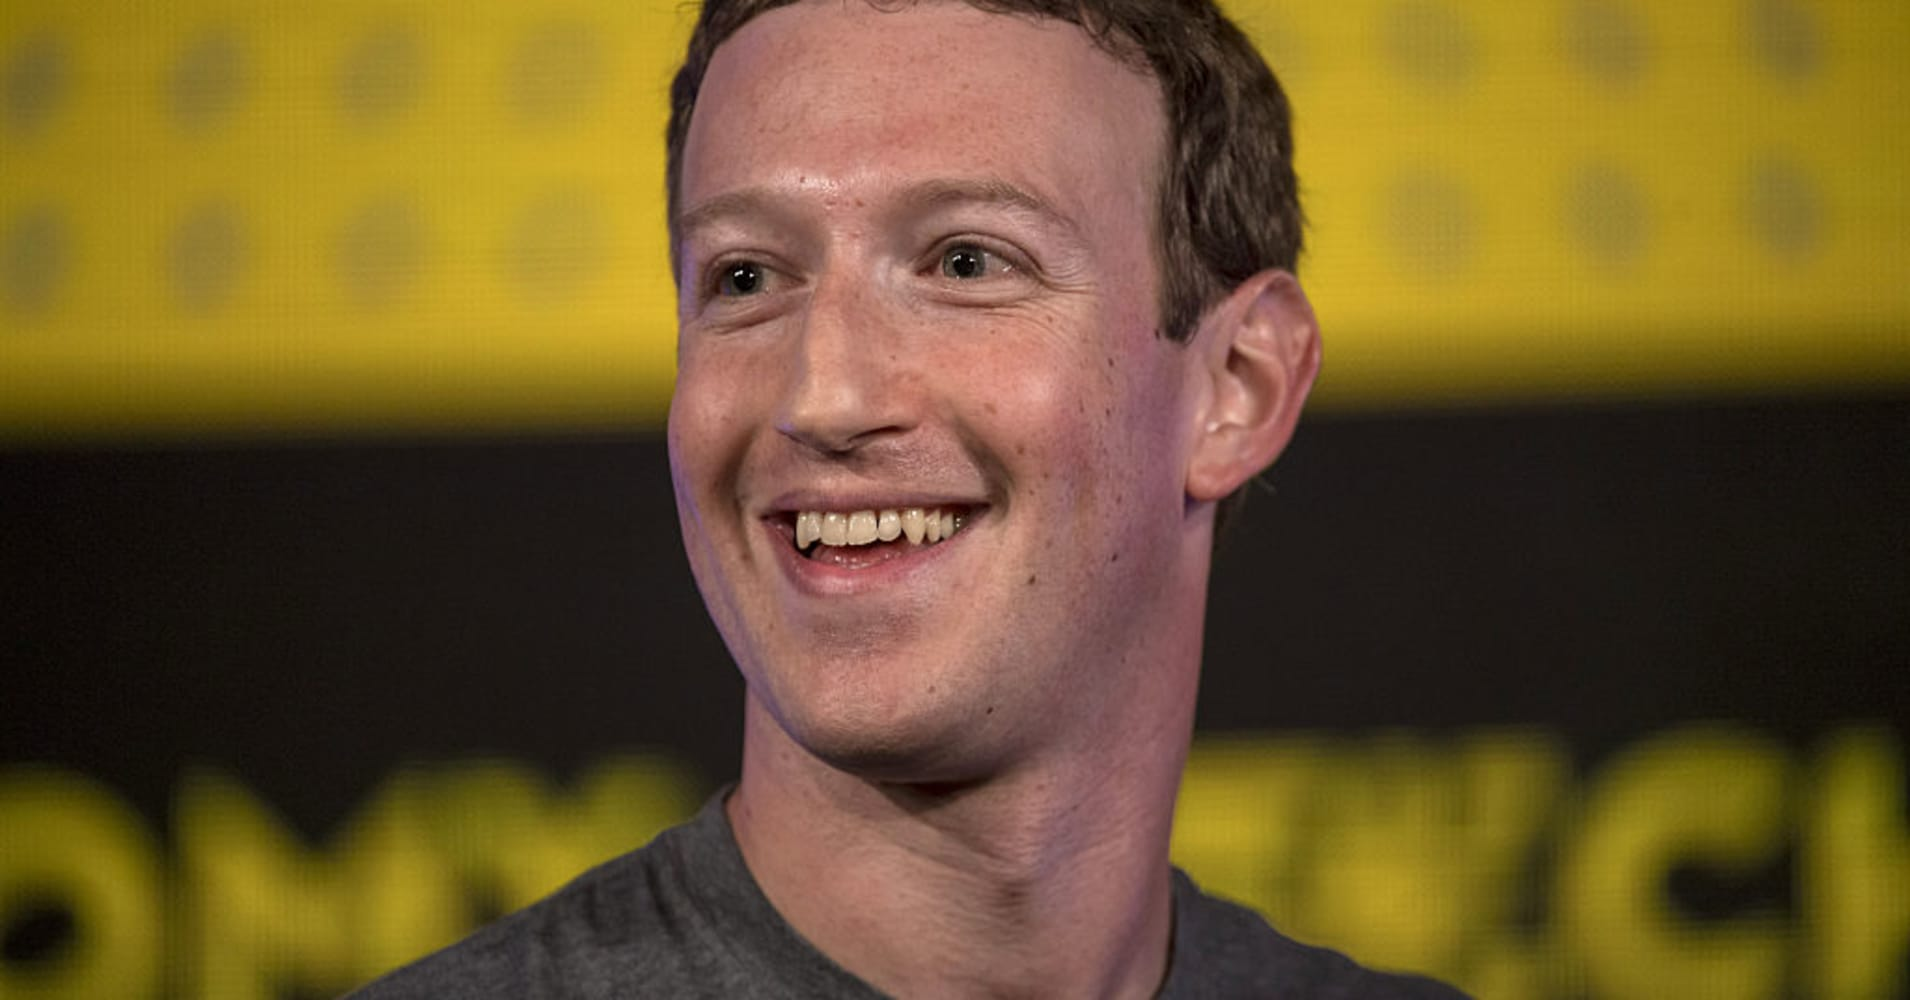 Facebook's revenue per user topped $5 for the first time